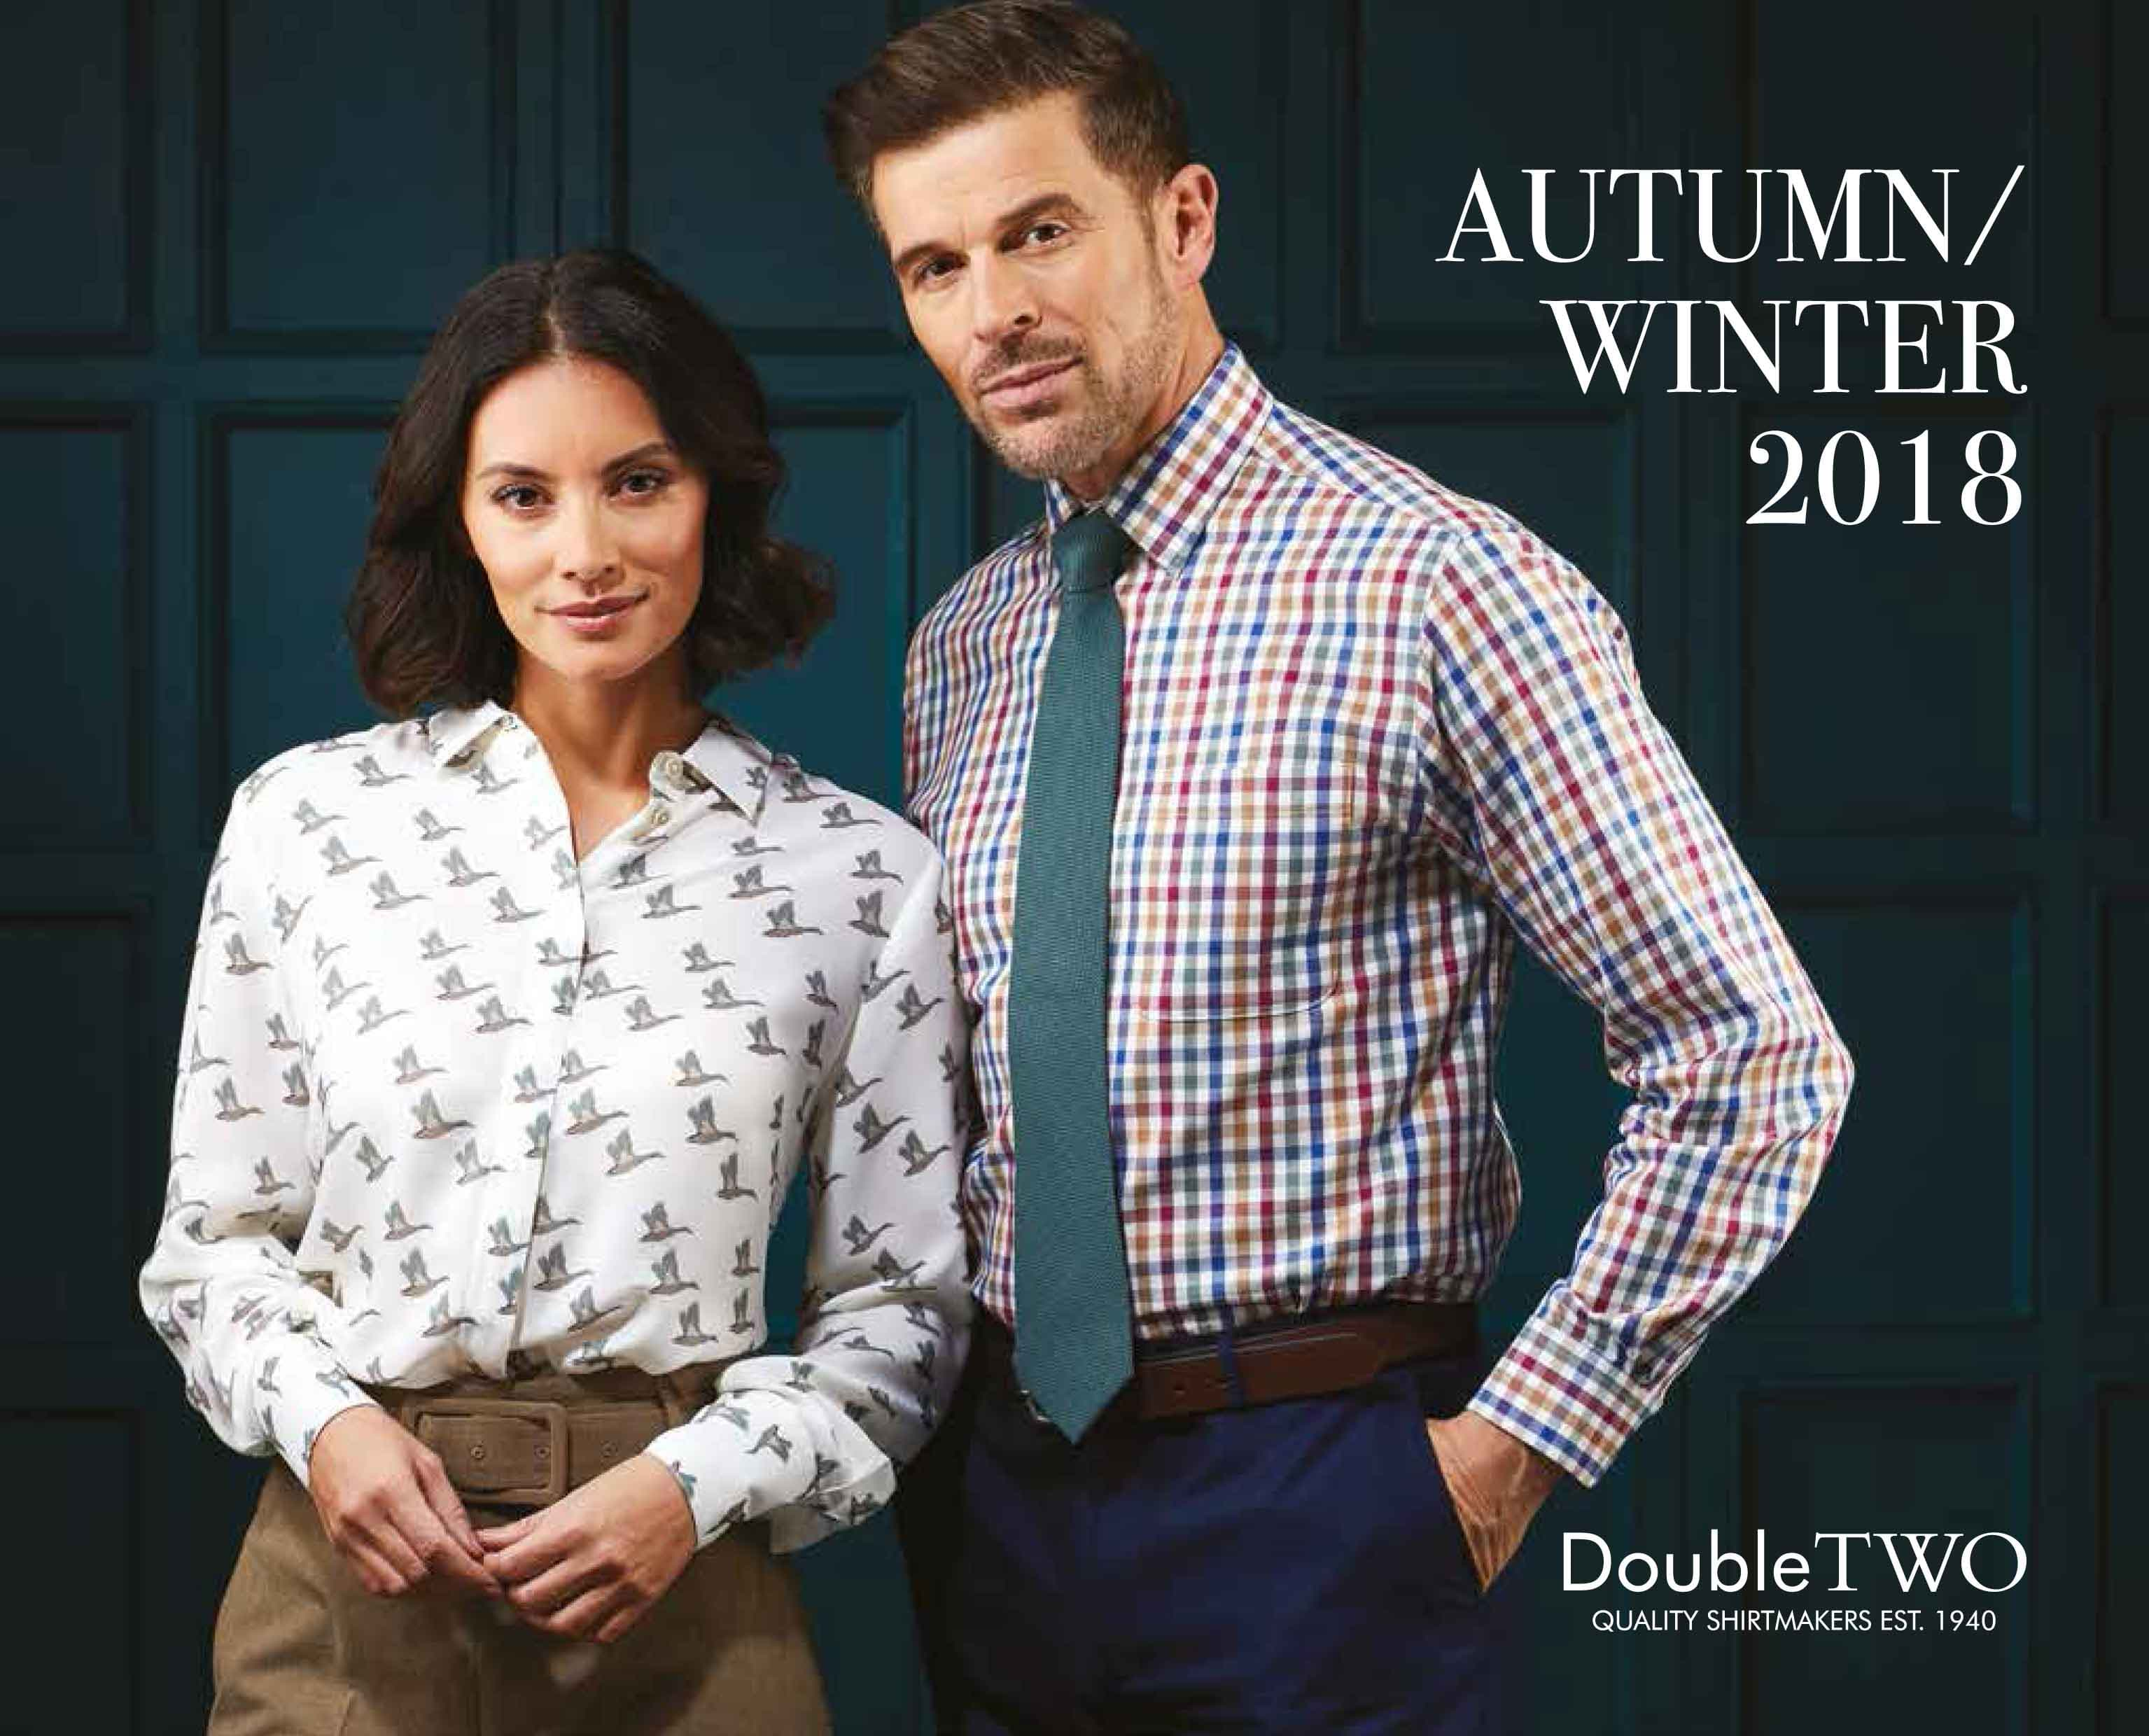 Double TWO Autumn Winter 2018 Collection